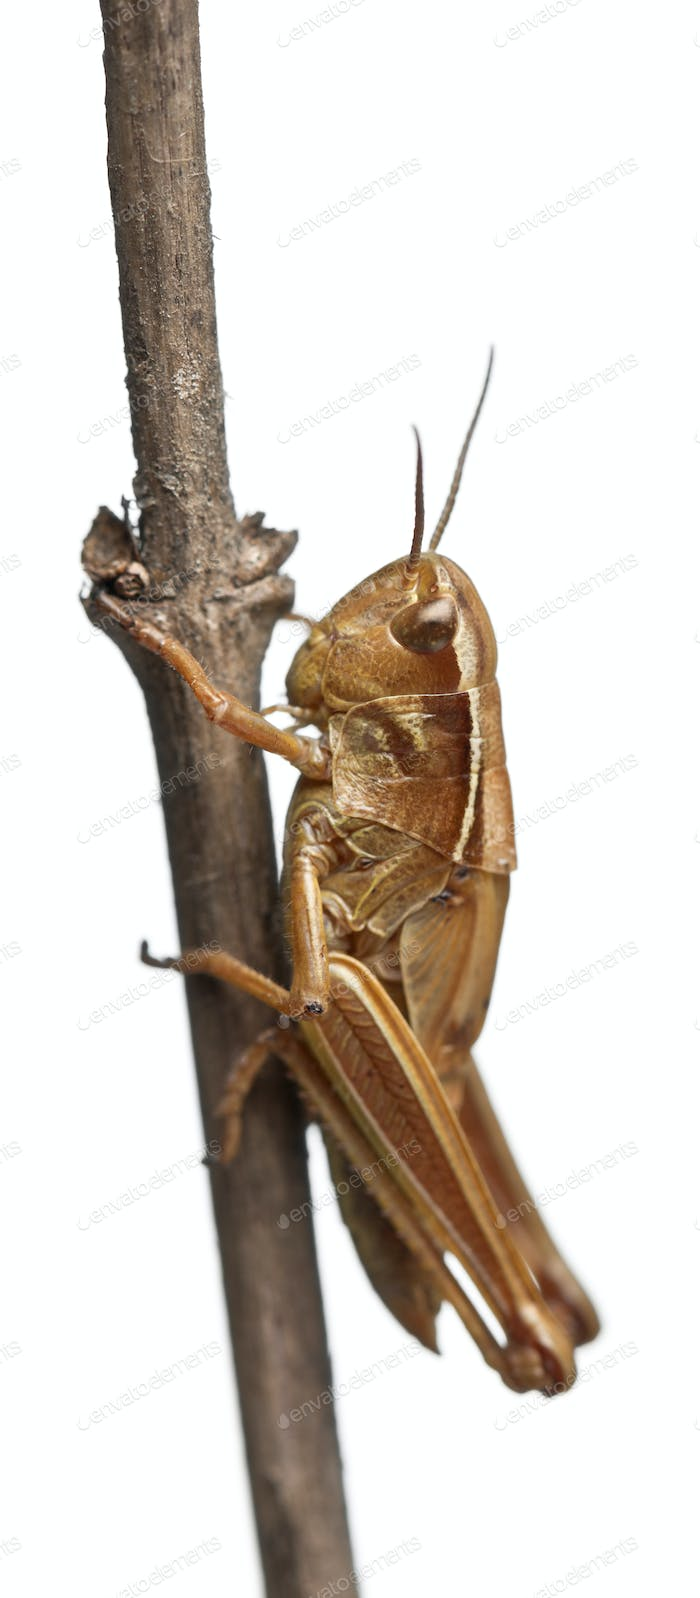 Grasshopper on branch in front of white background